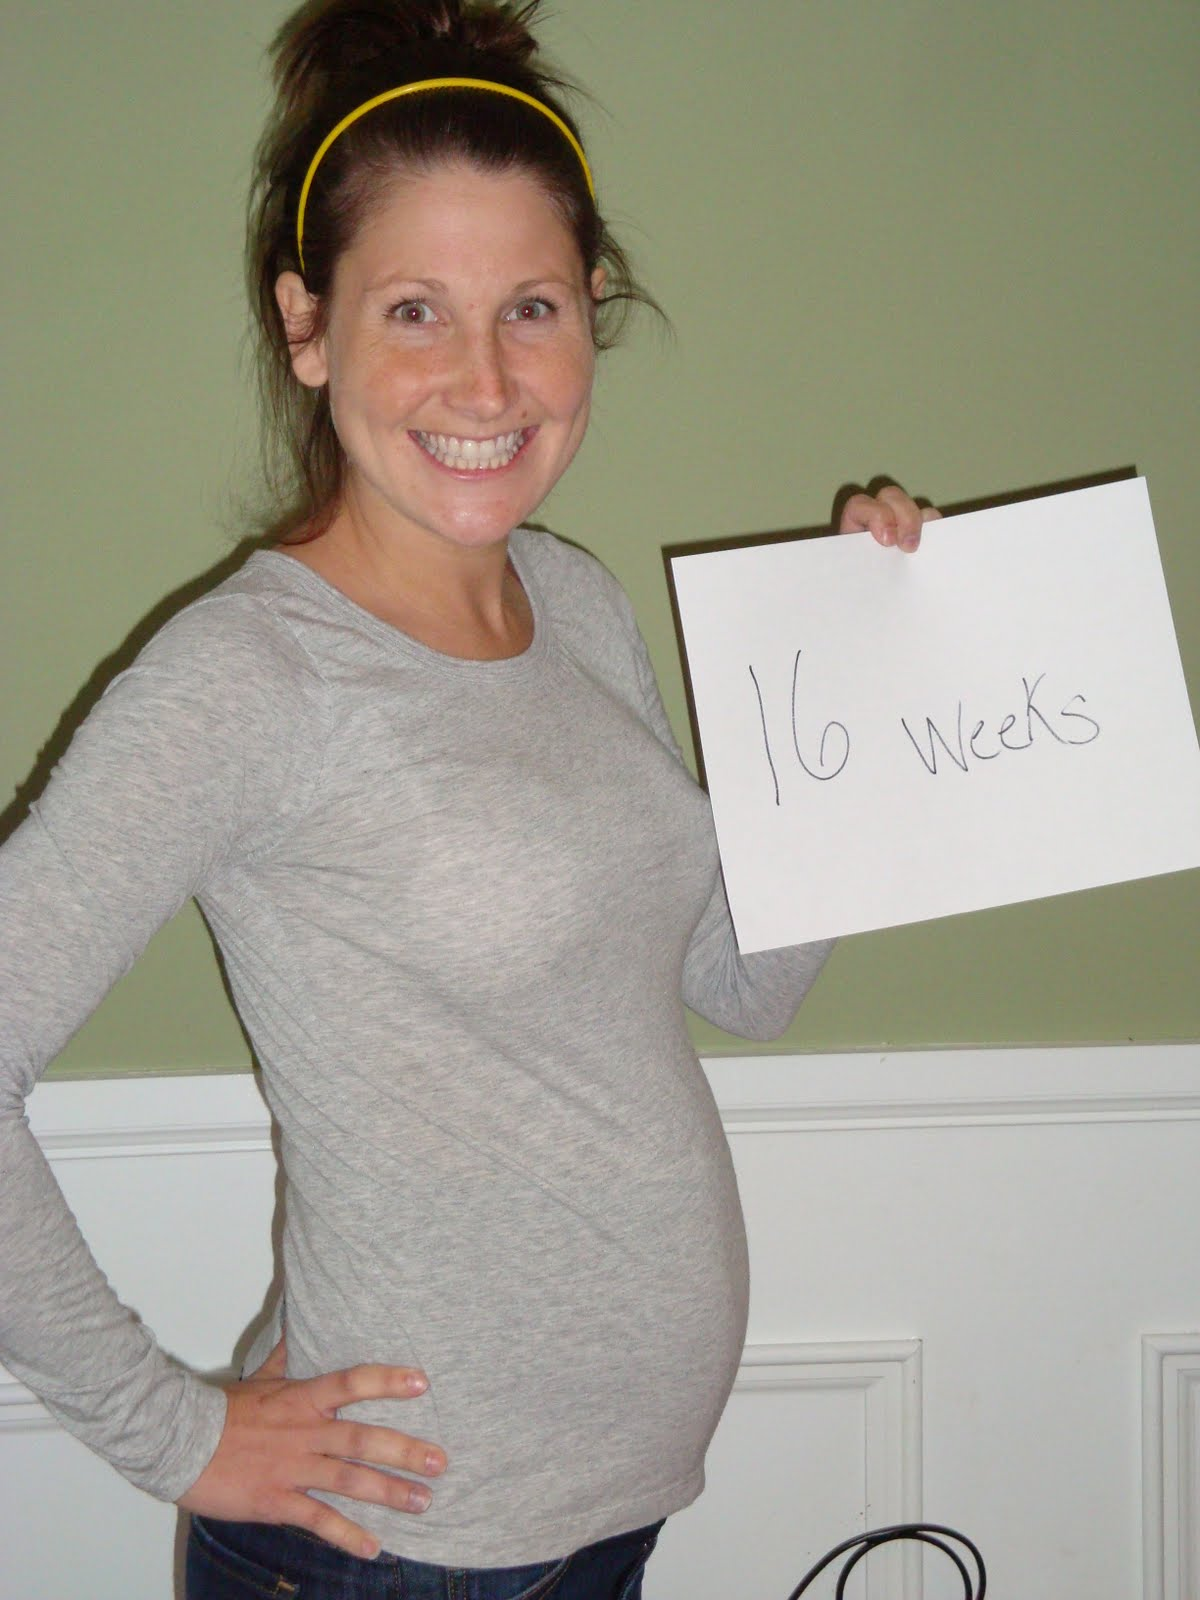 i am only just 16 weeks